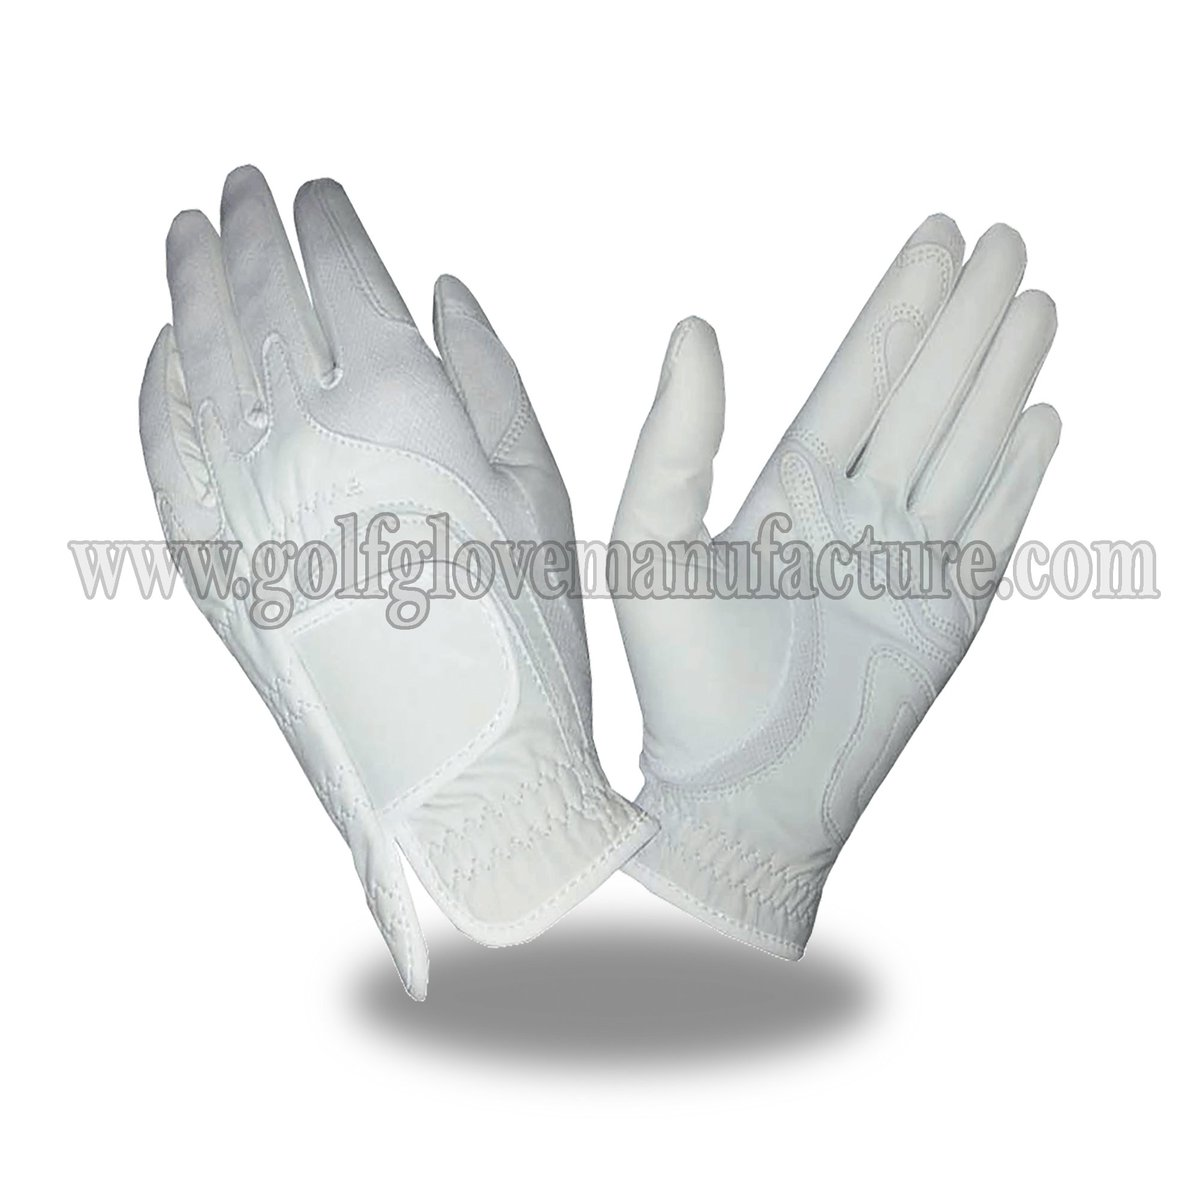 MODEL GCO006  SPECIFICATION OF GLOVE: MATERIAL : FULL LEATHER COMBINED : LYCRA COLOR : WHITE  CS  : +62 896 6891 2467, +62 858 4233 2719 Email : sales@brcorporation.id , sales@glovemanufacture.com  #golf  #golfglove #gloves #bestglove #sport #bestcabretta